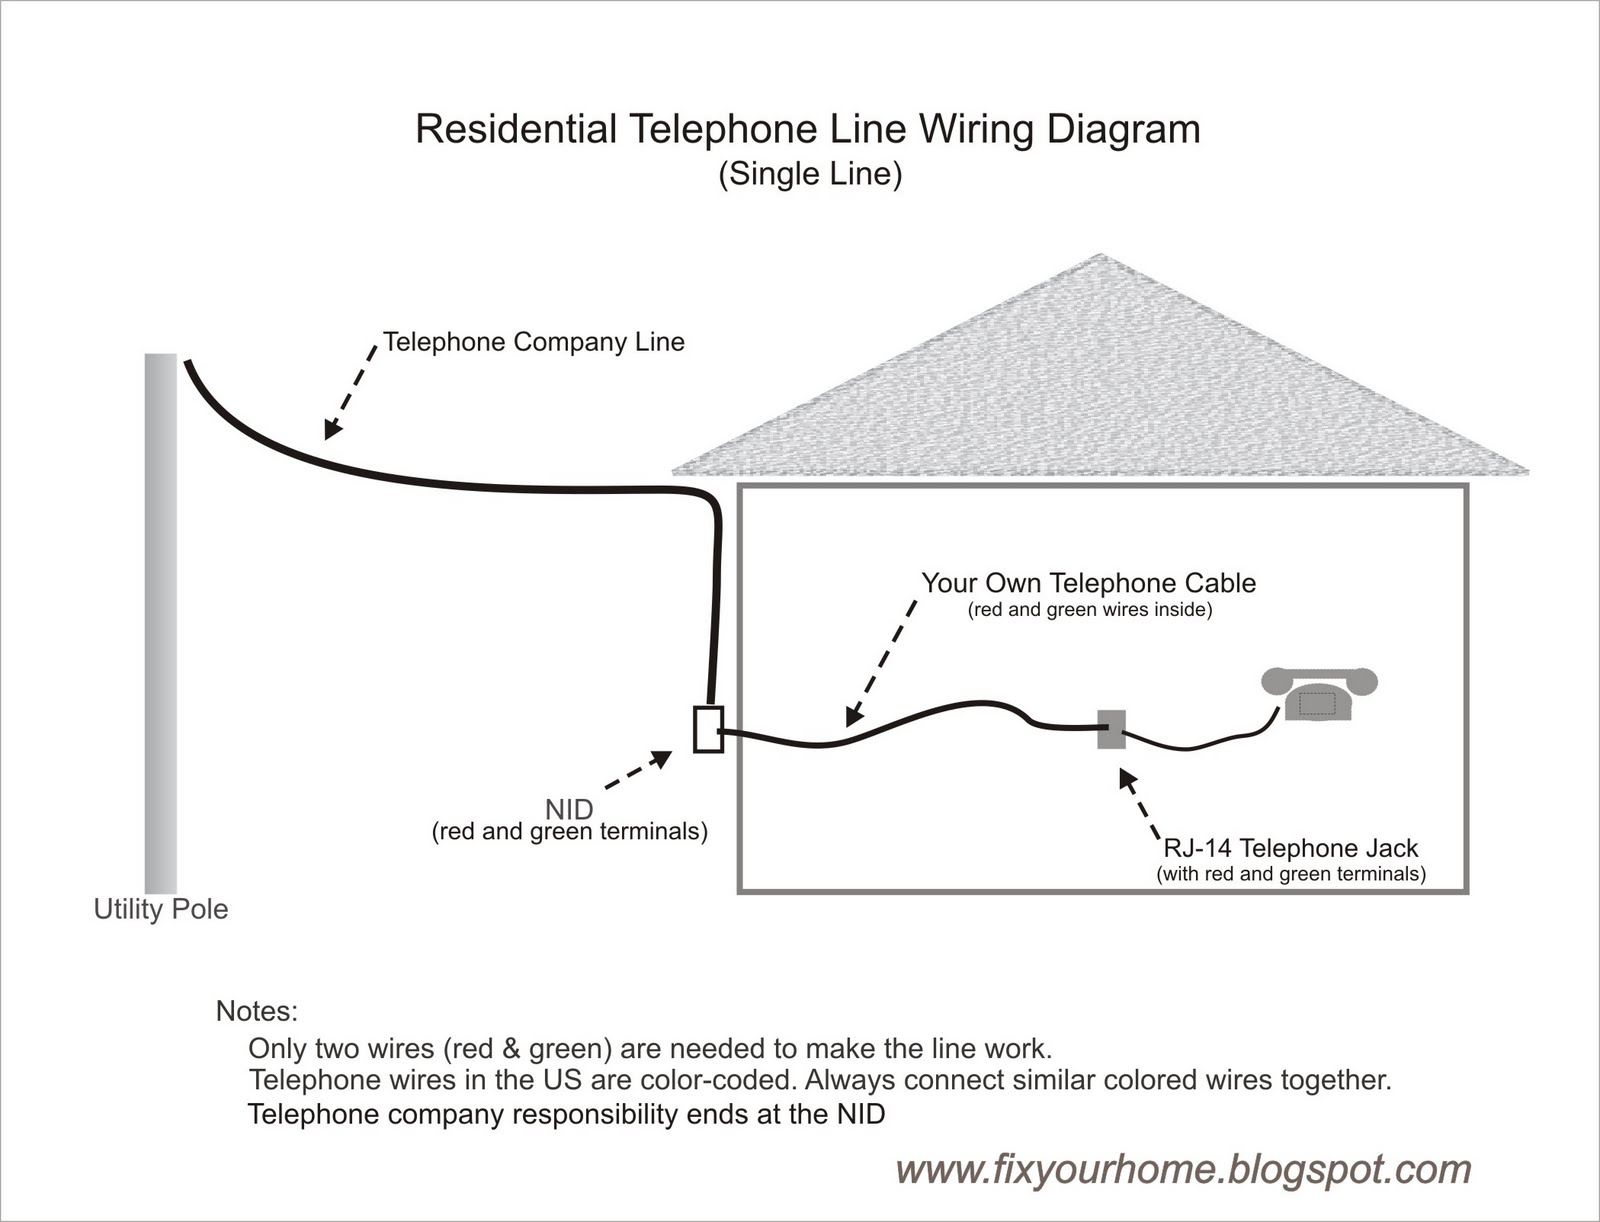 medium resolution of fix your home how to wire your own telephone line wiring diagram for line output converter wiring diagram for two line phone jack